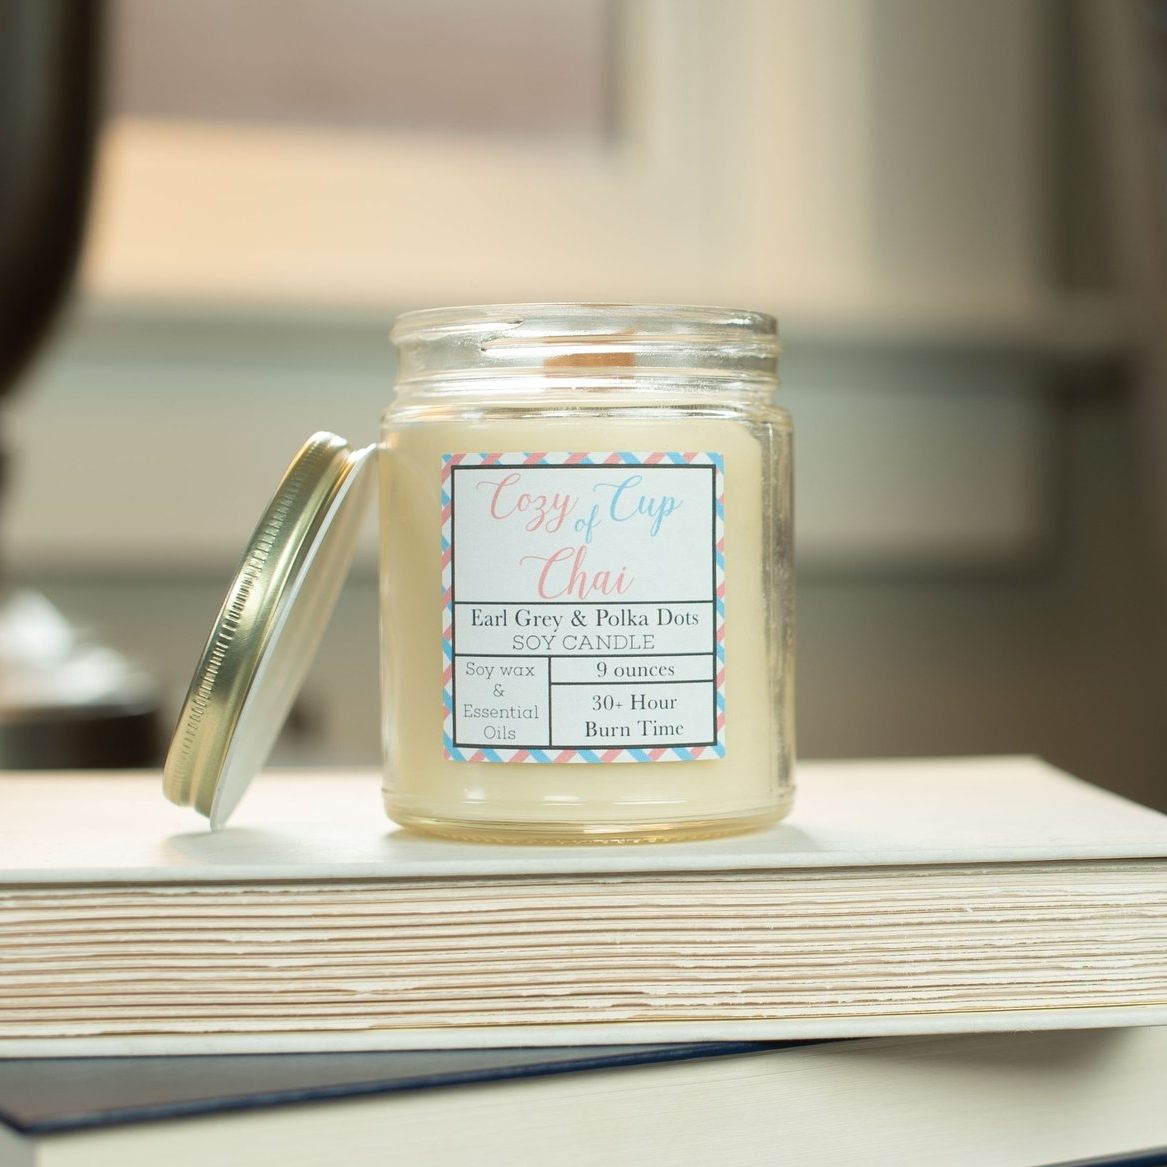 Cozy Cup of Chai Candle - Earl Grey and Polka Dots